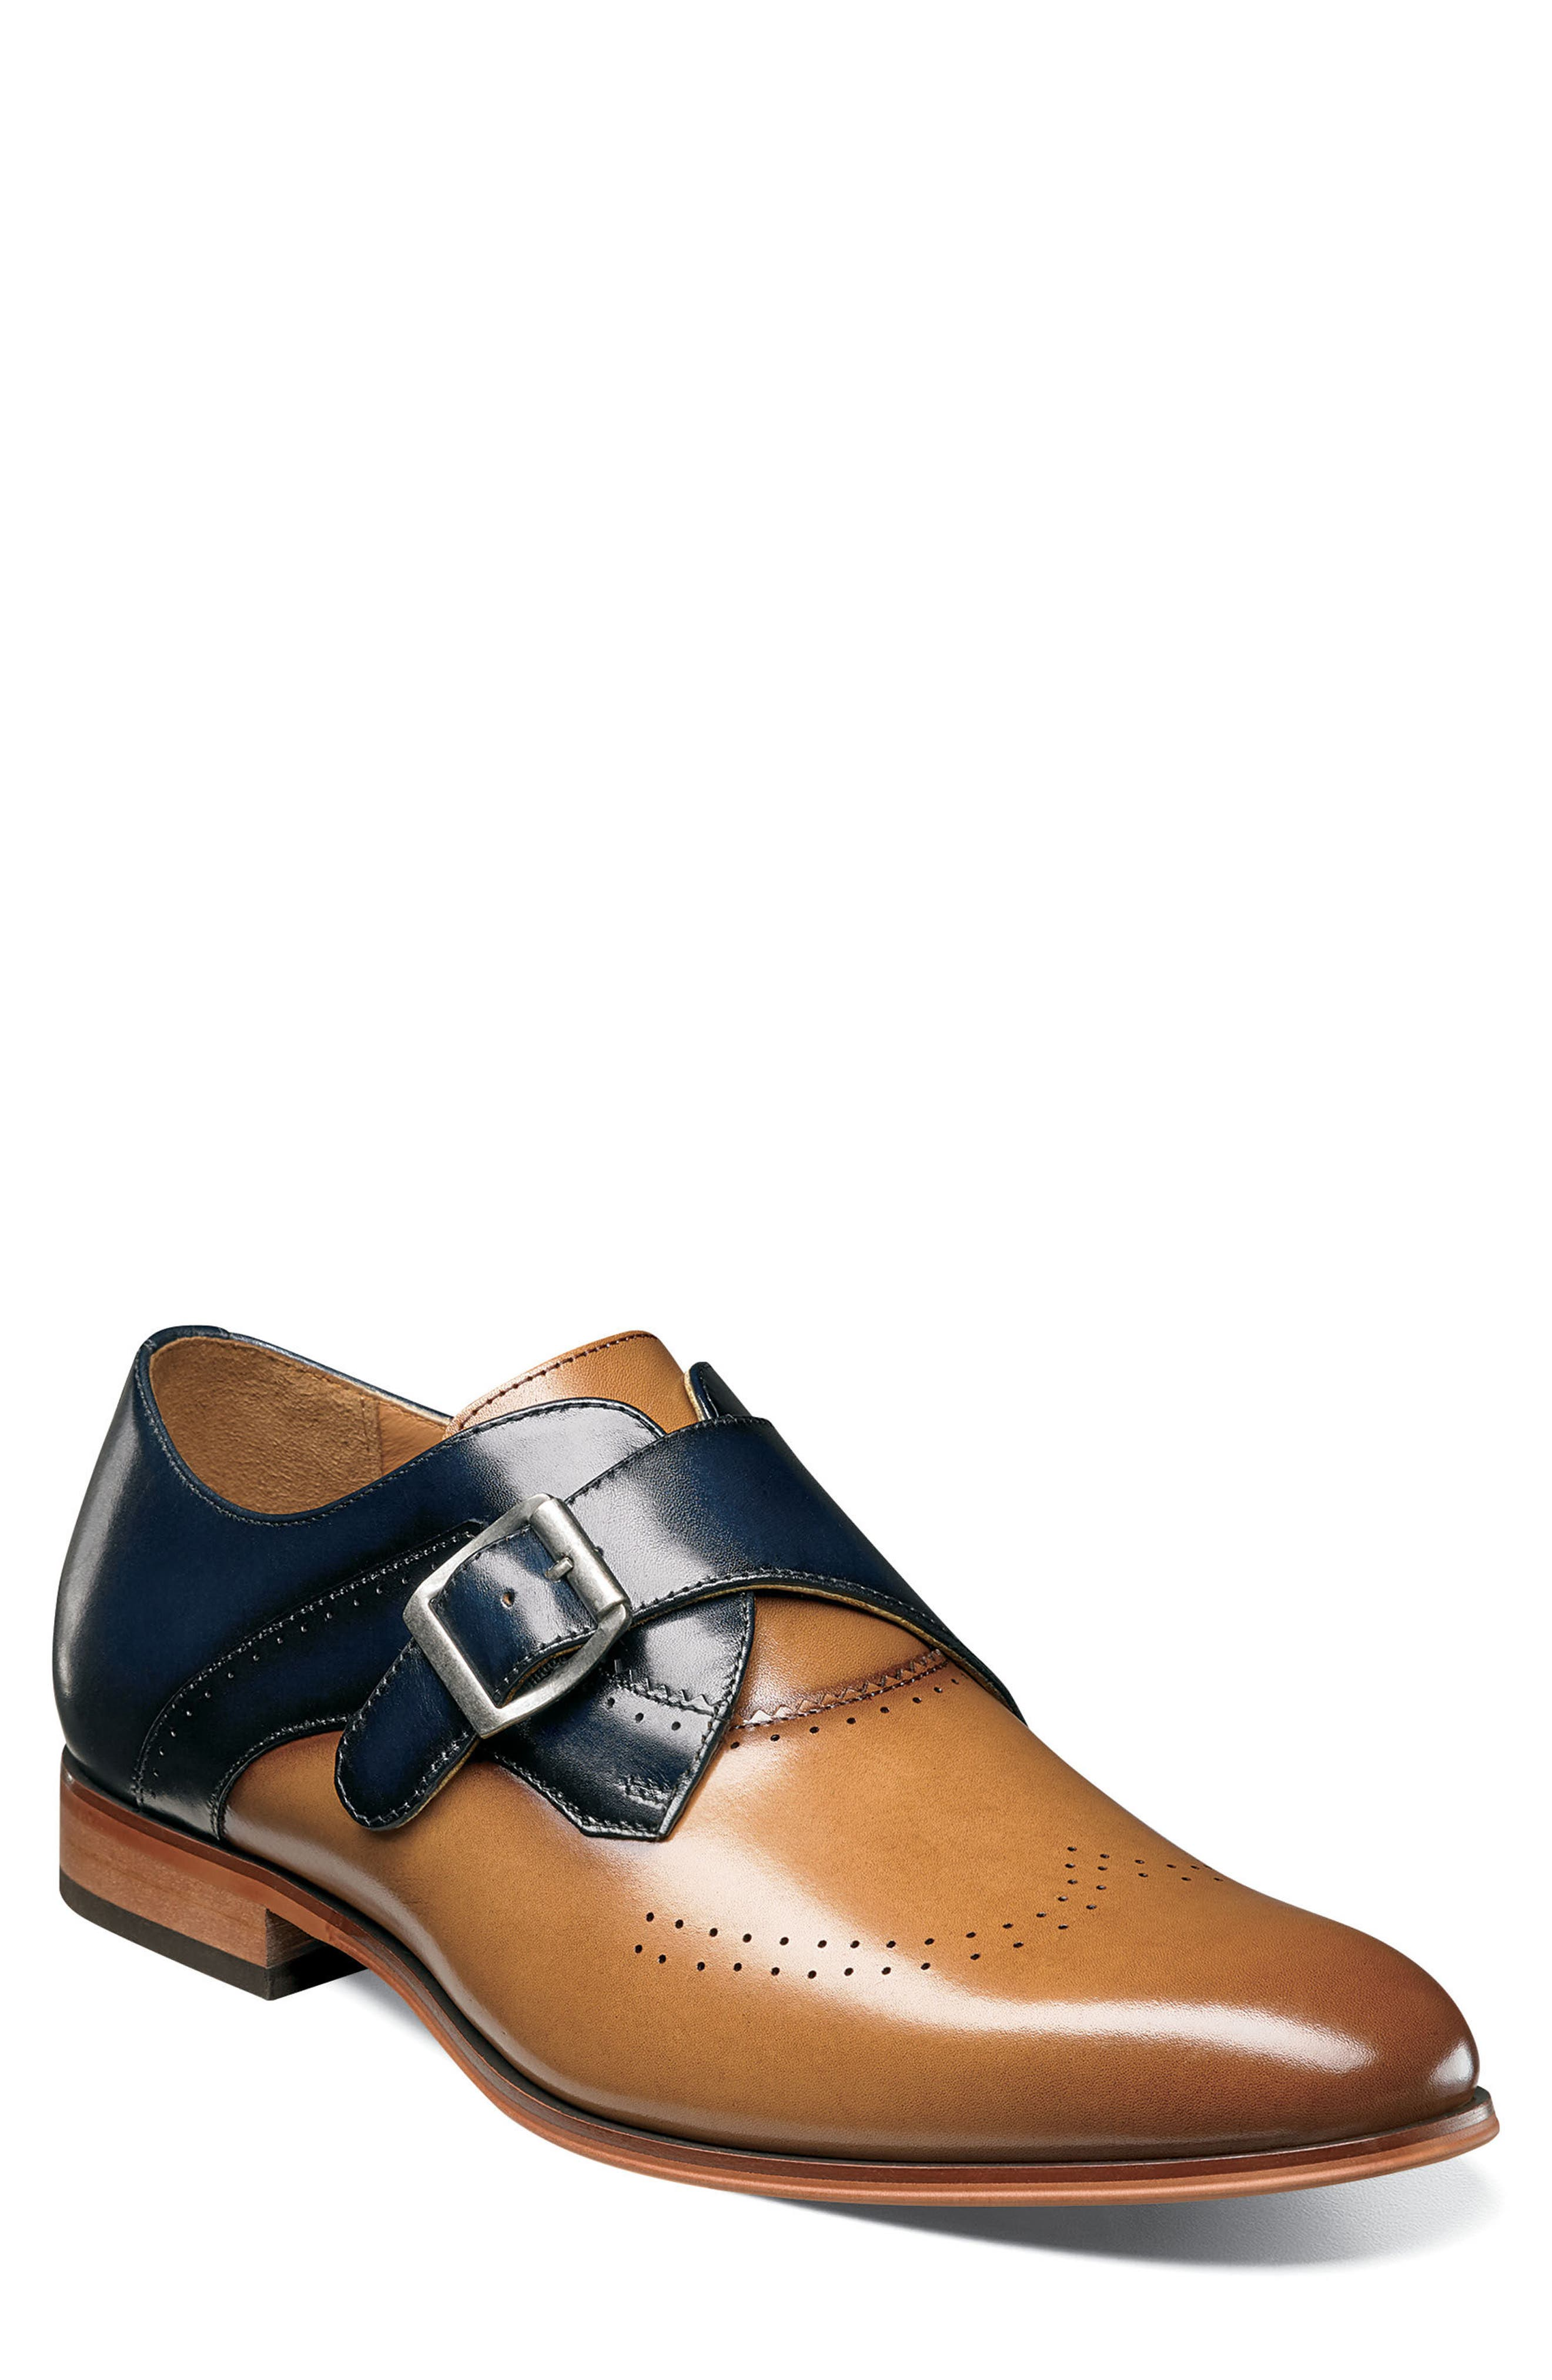 Alternate Image 1 Selected - Stacy Adams Saxon Perforated Monk Shoe (Men)